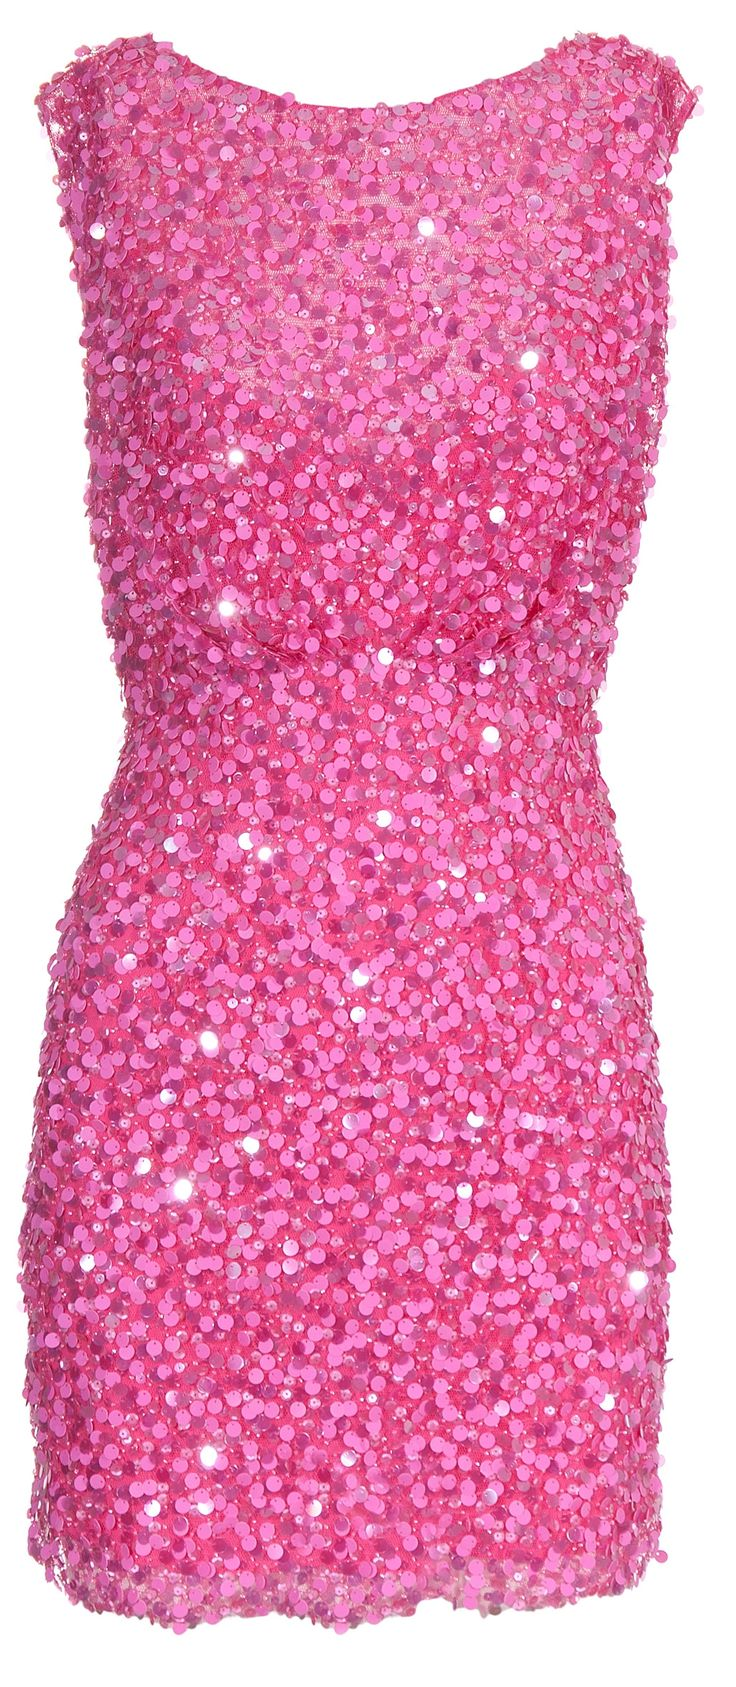 JENNY PACKHAM PINK STAR - if only i had somewhere to wear a dress like this...